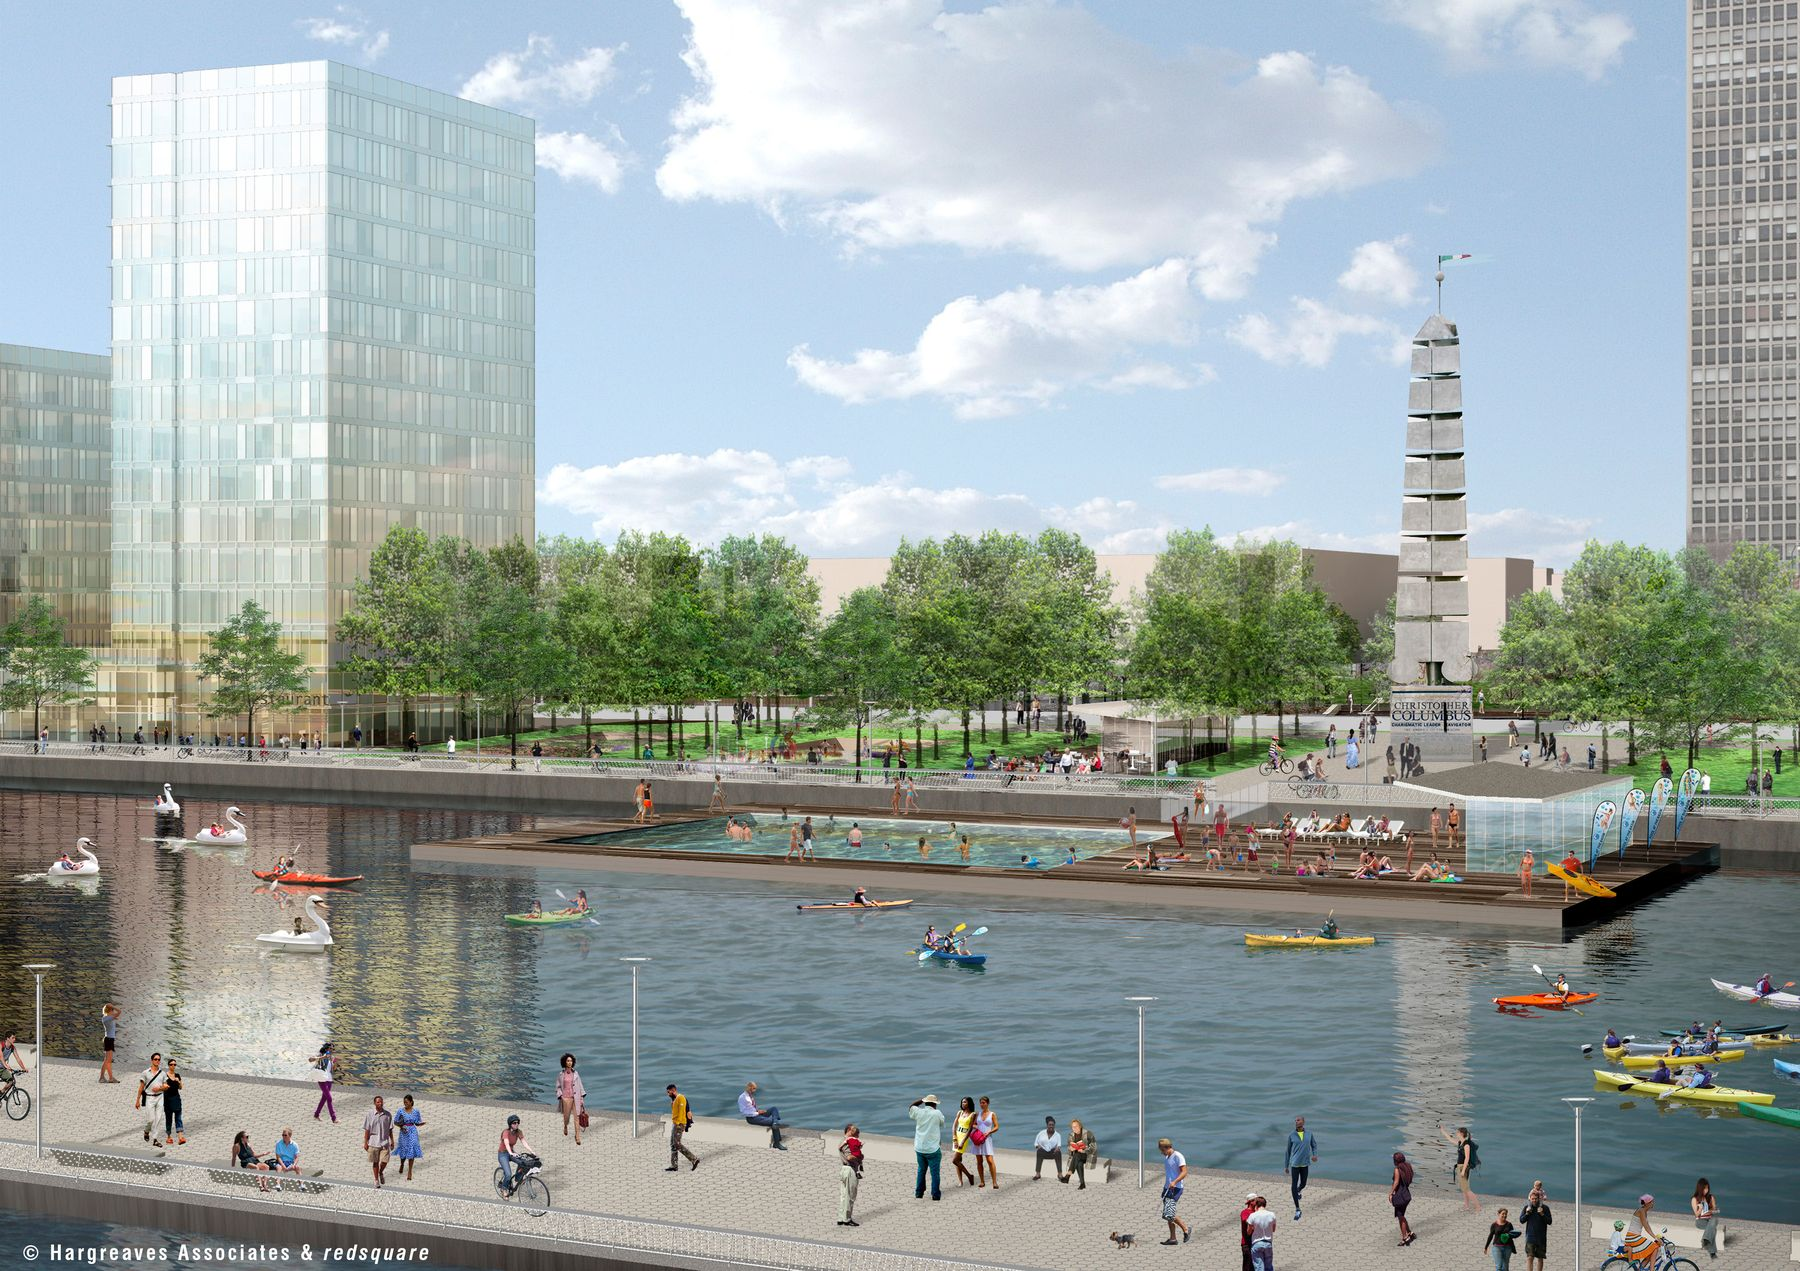 Rendering of Penn's Landing's marina | Hargreaves Associates and redsquare, June 2017